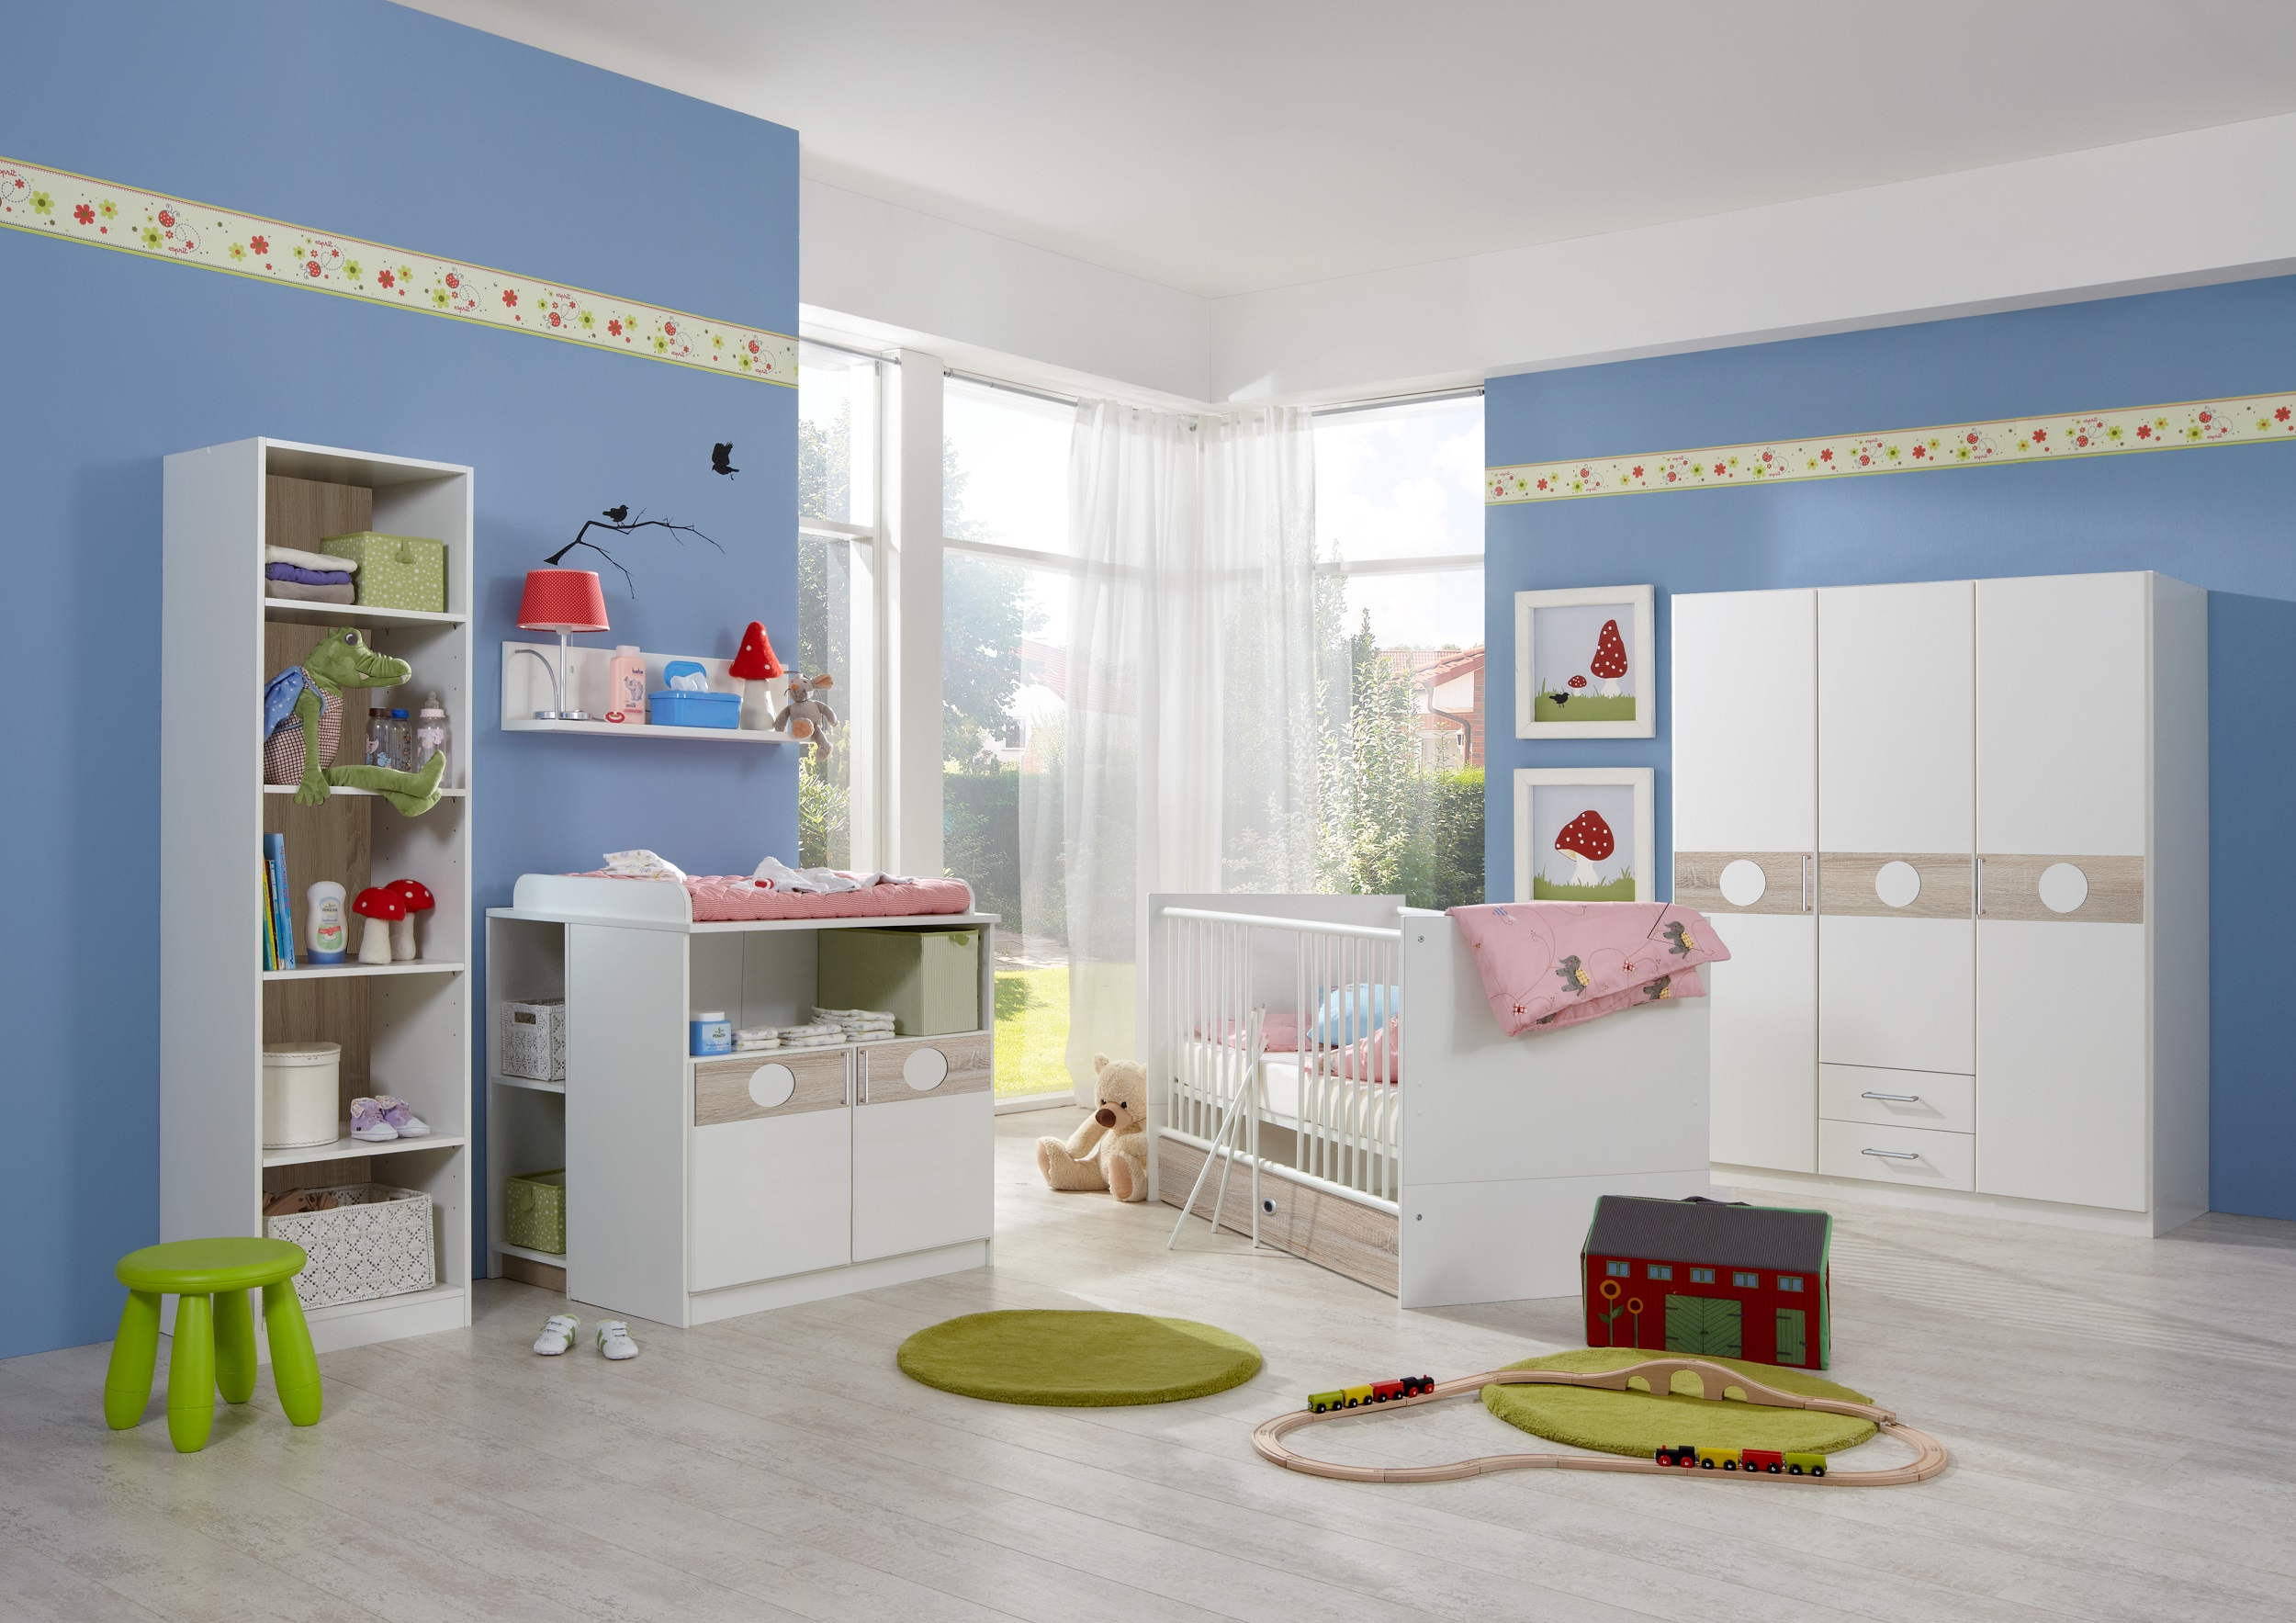 babyzimmer set kimba 7tlg komplett bett wickelkommode gr schrank regal eiche ebay. Black Bedroom Furniture Sets. Home Design Ideas